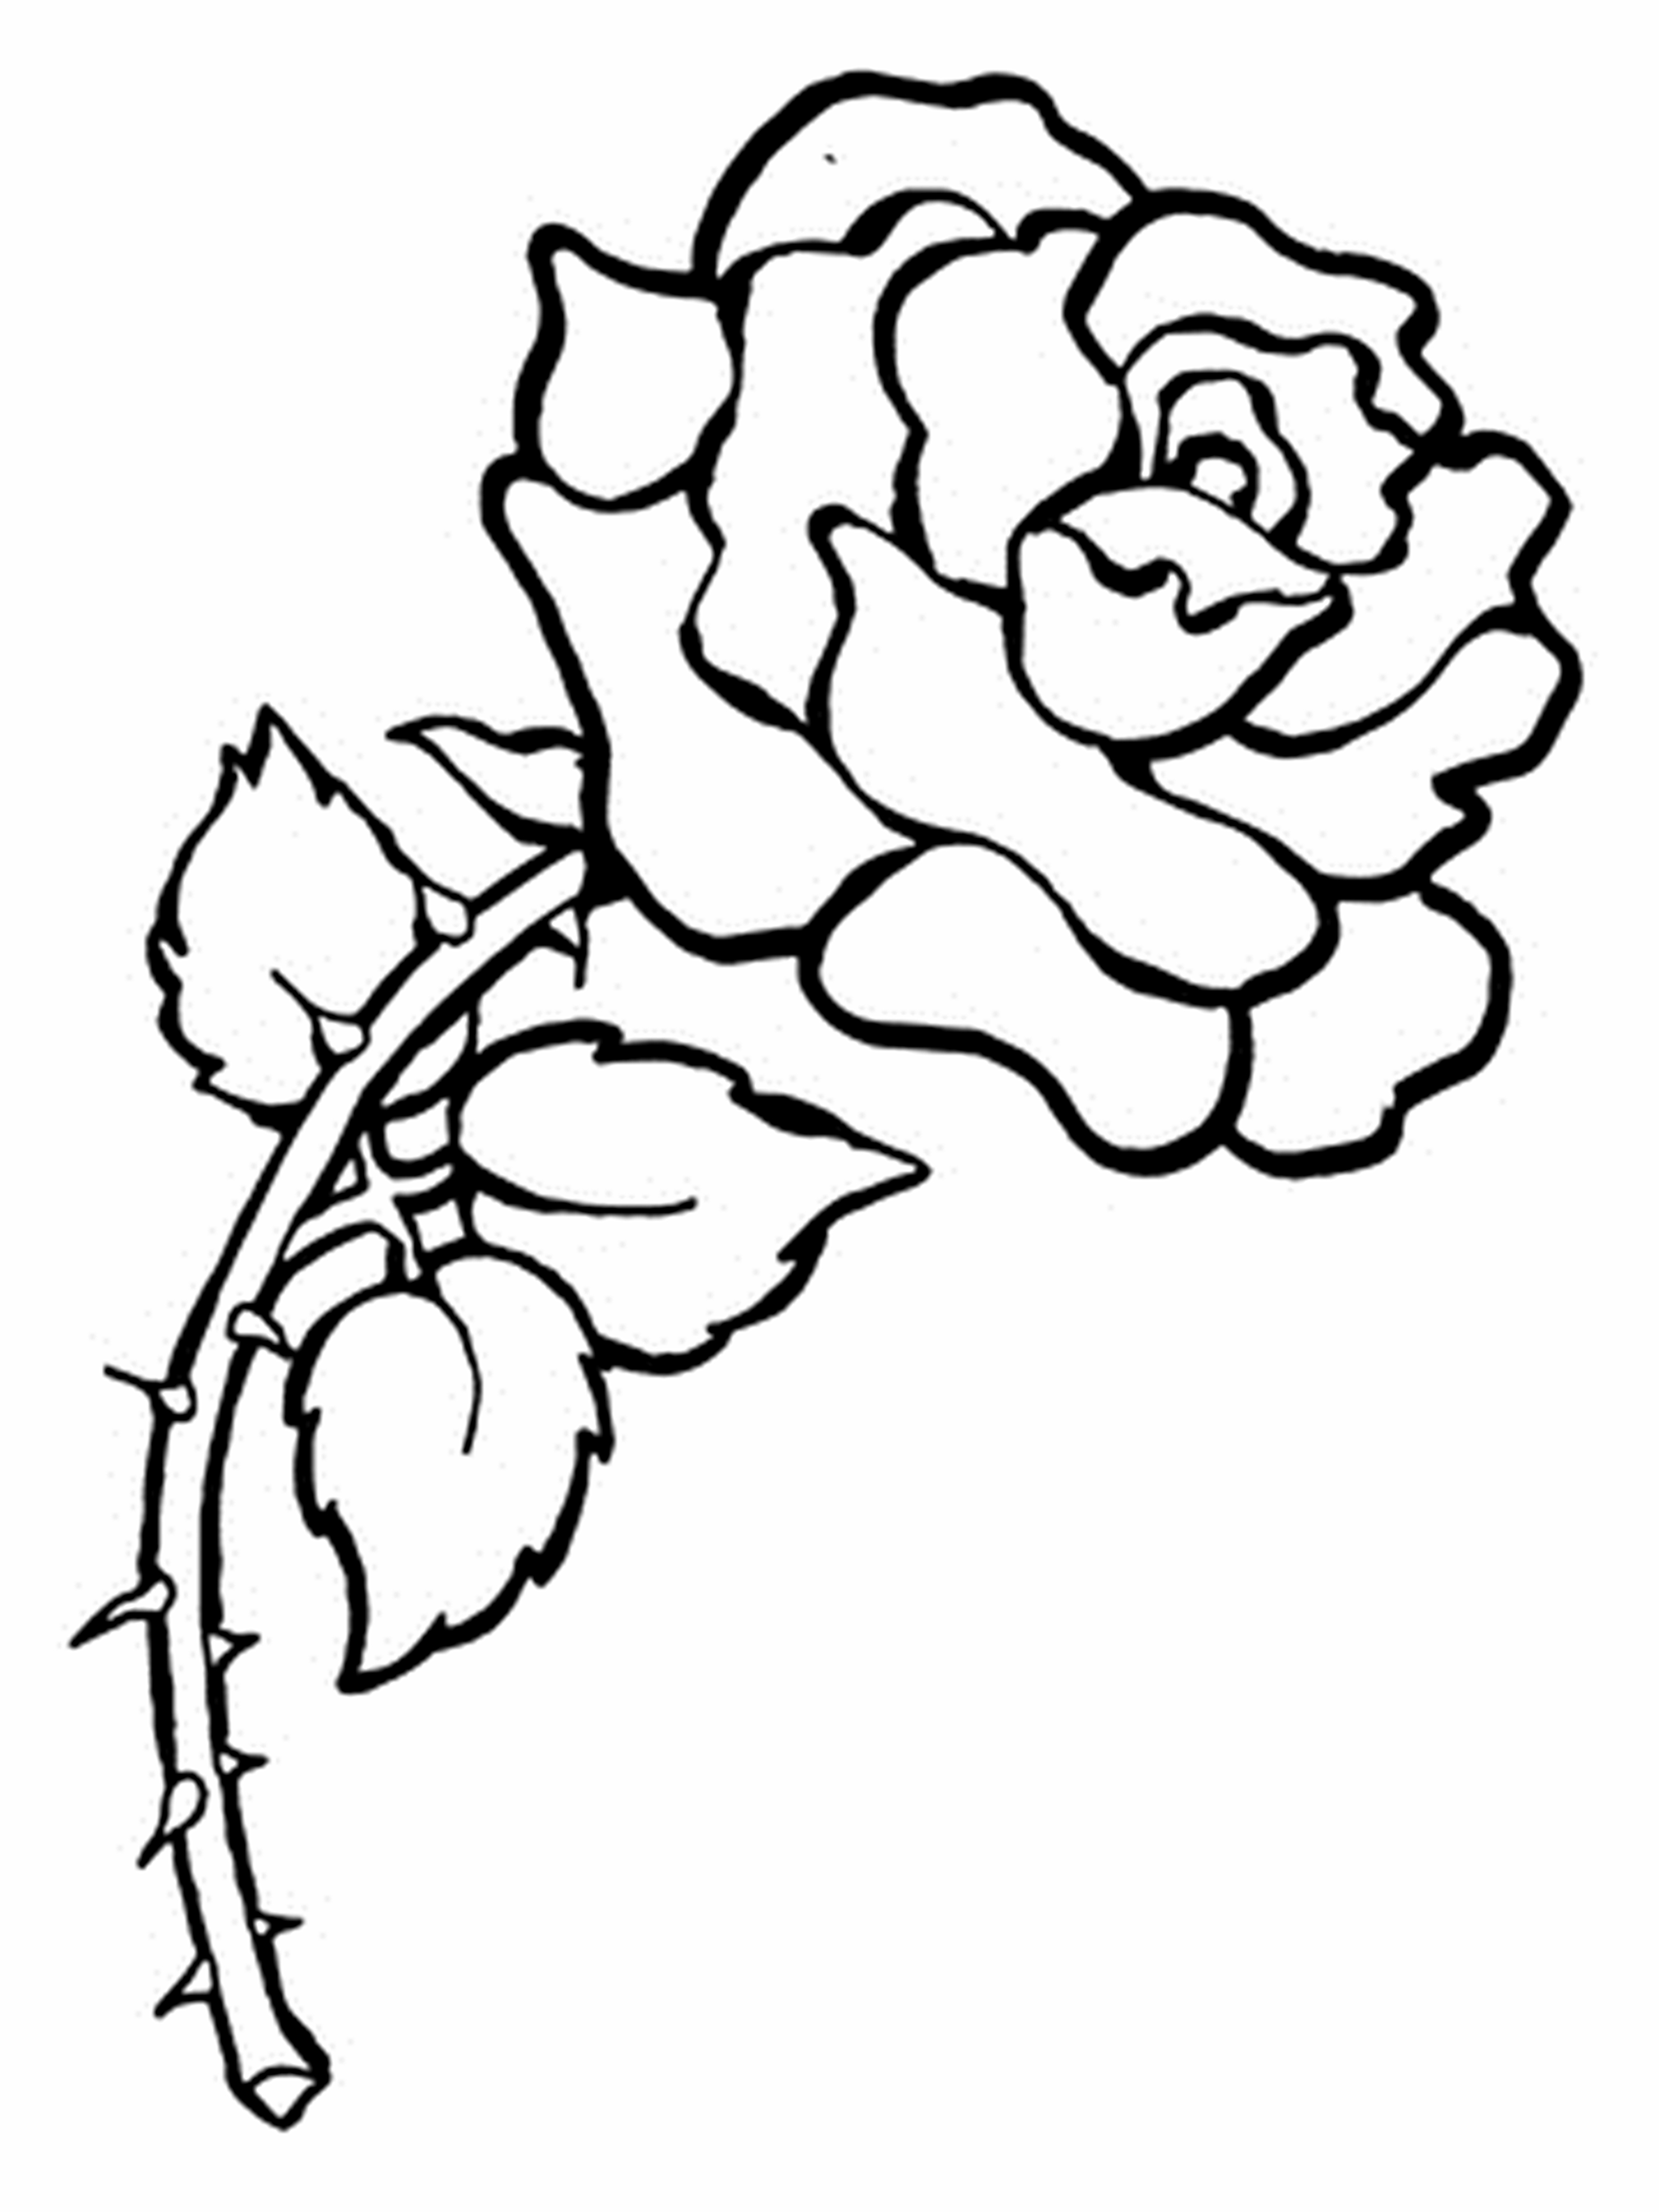 Printable Rose Flower Coloring Apage